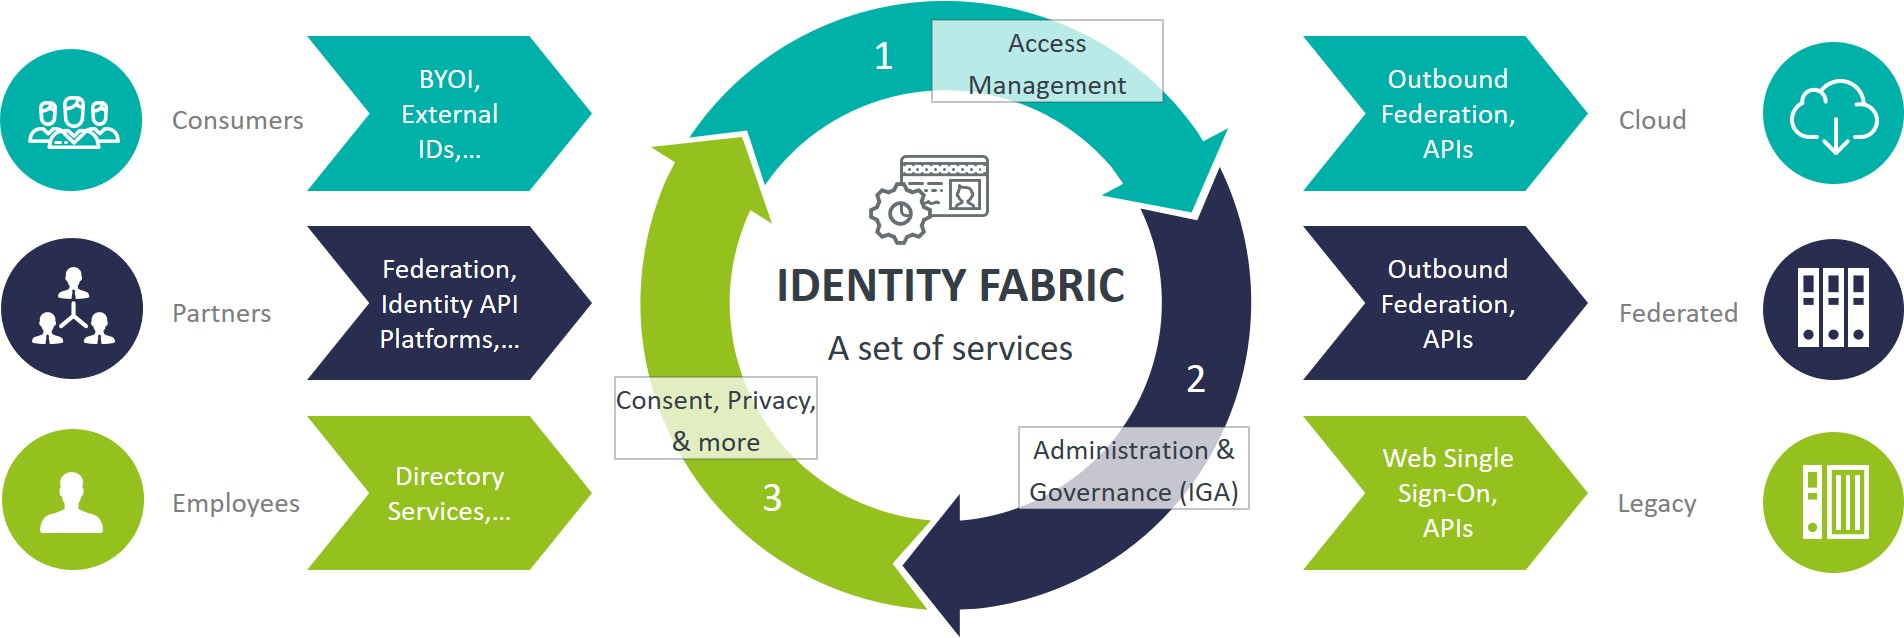 Identity Fabric Lifecycle by Martin Kuppinger